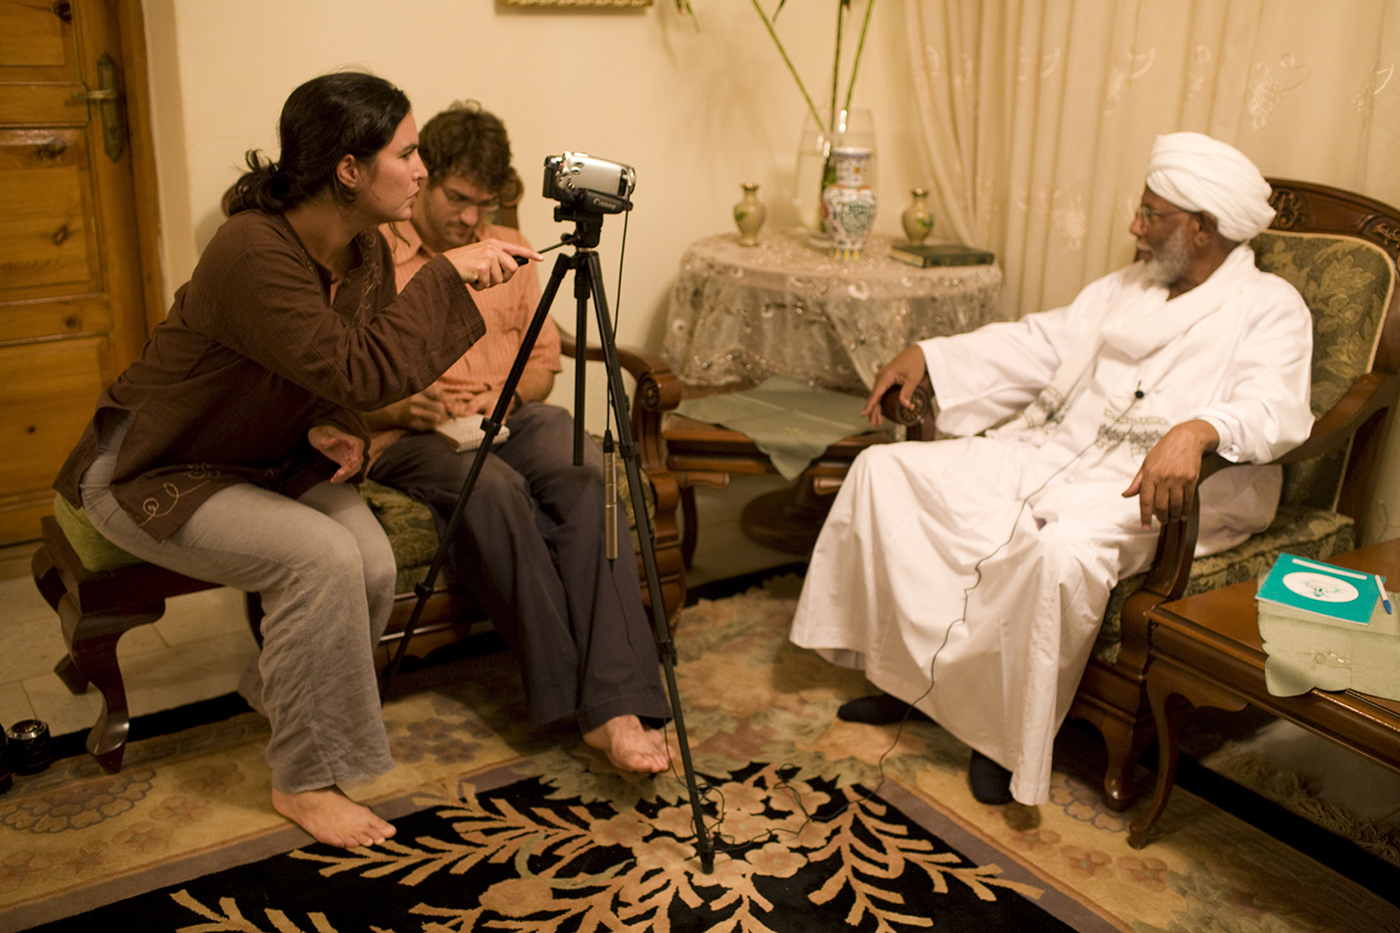 Shoes off for interviewing one of Sudan's most dangerous, intelligent and whimsical intellectuals, Hassan Al-Turabi. Khartoum, Sudan